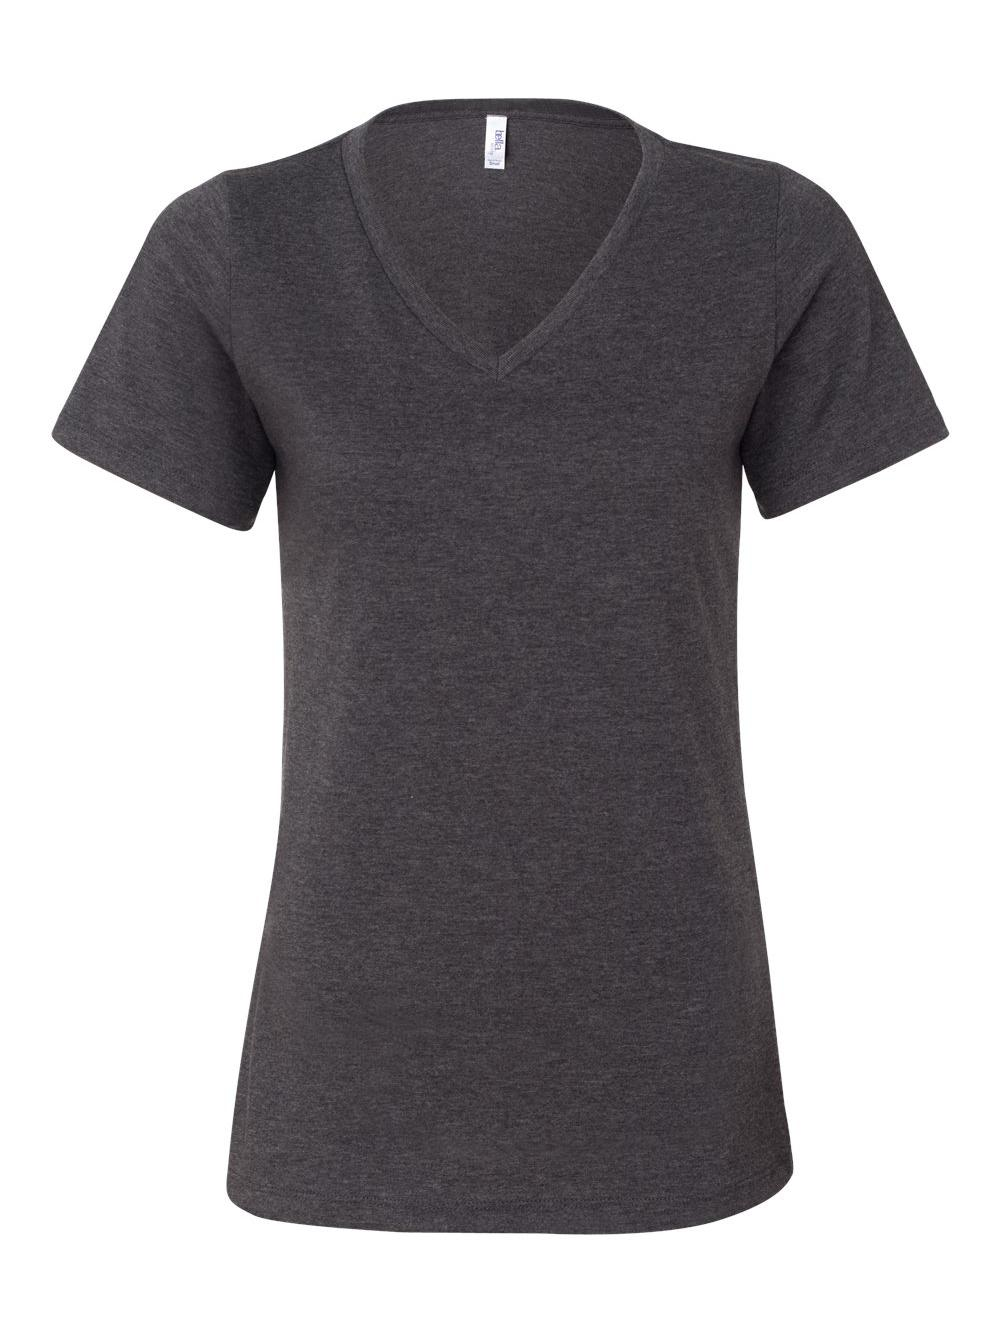 Bella-Canvas-Women-039-s-Relaxed-Short-Sleeve-Jersey-V-Neck-Tee-6405 thumbnail 18